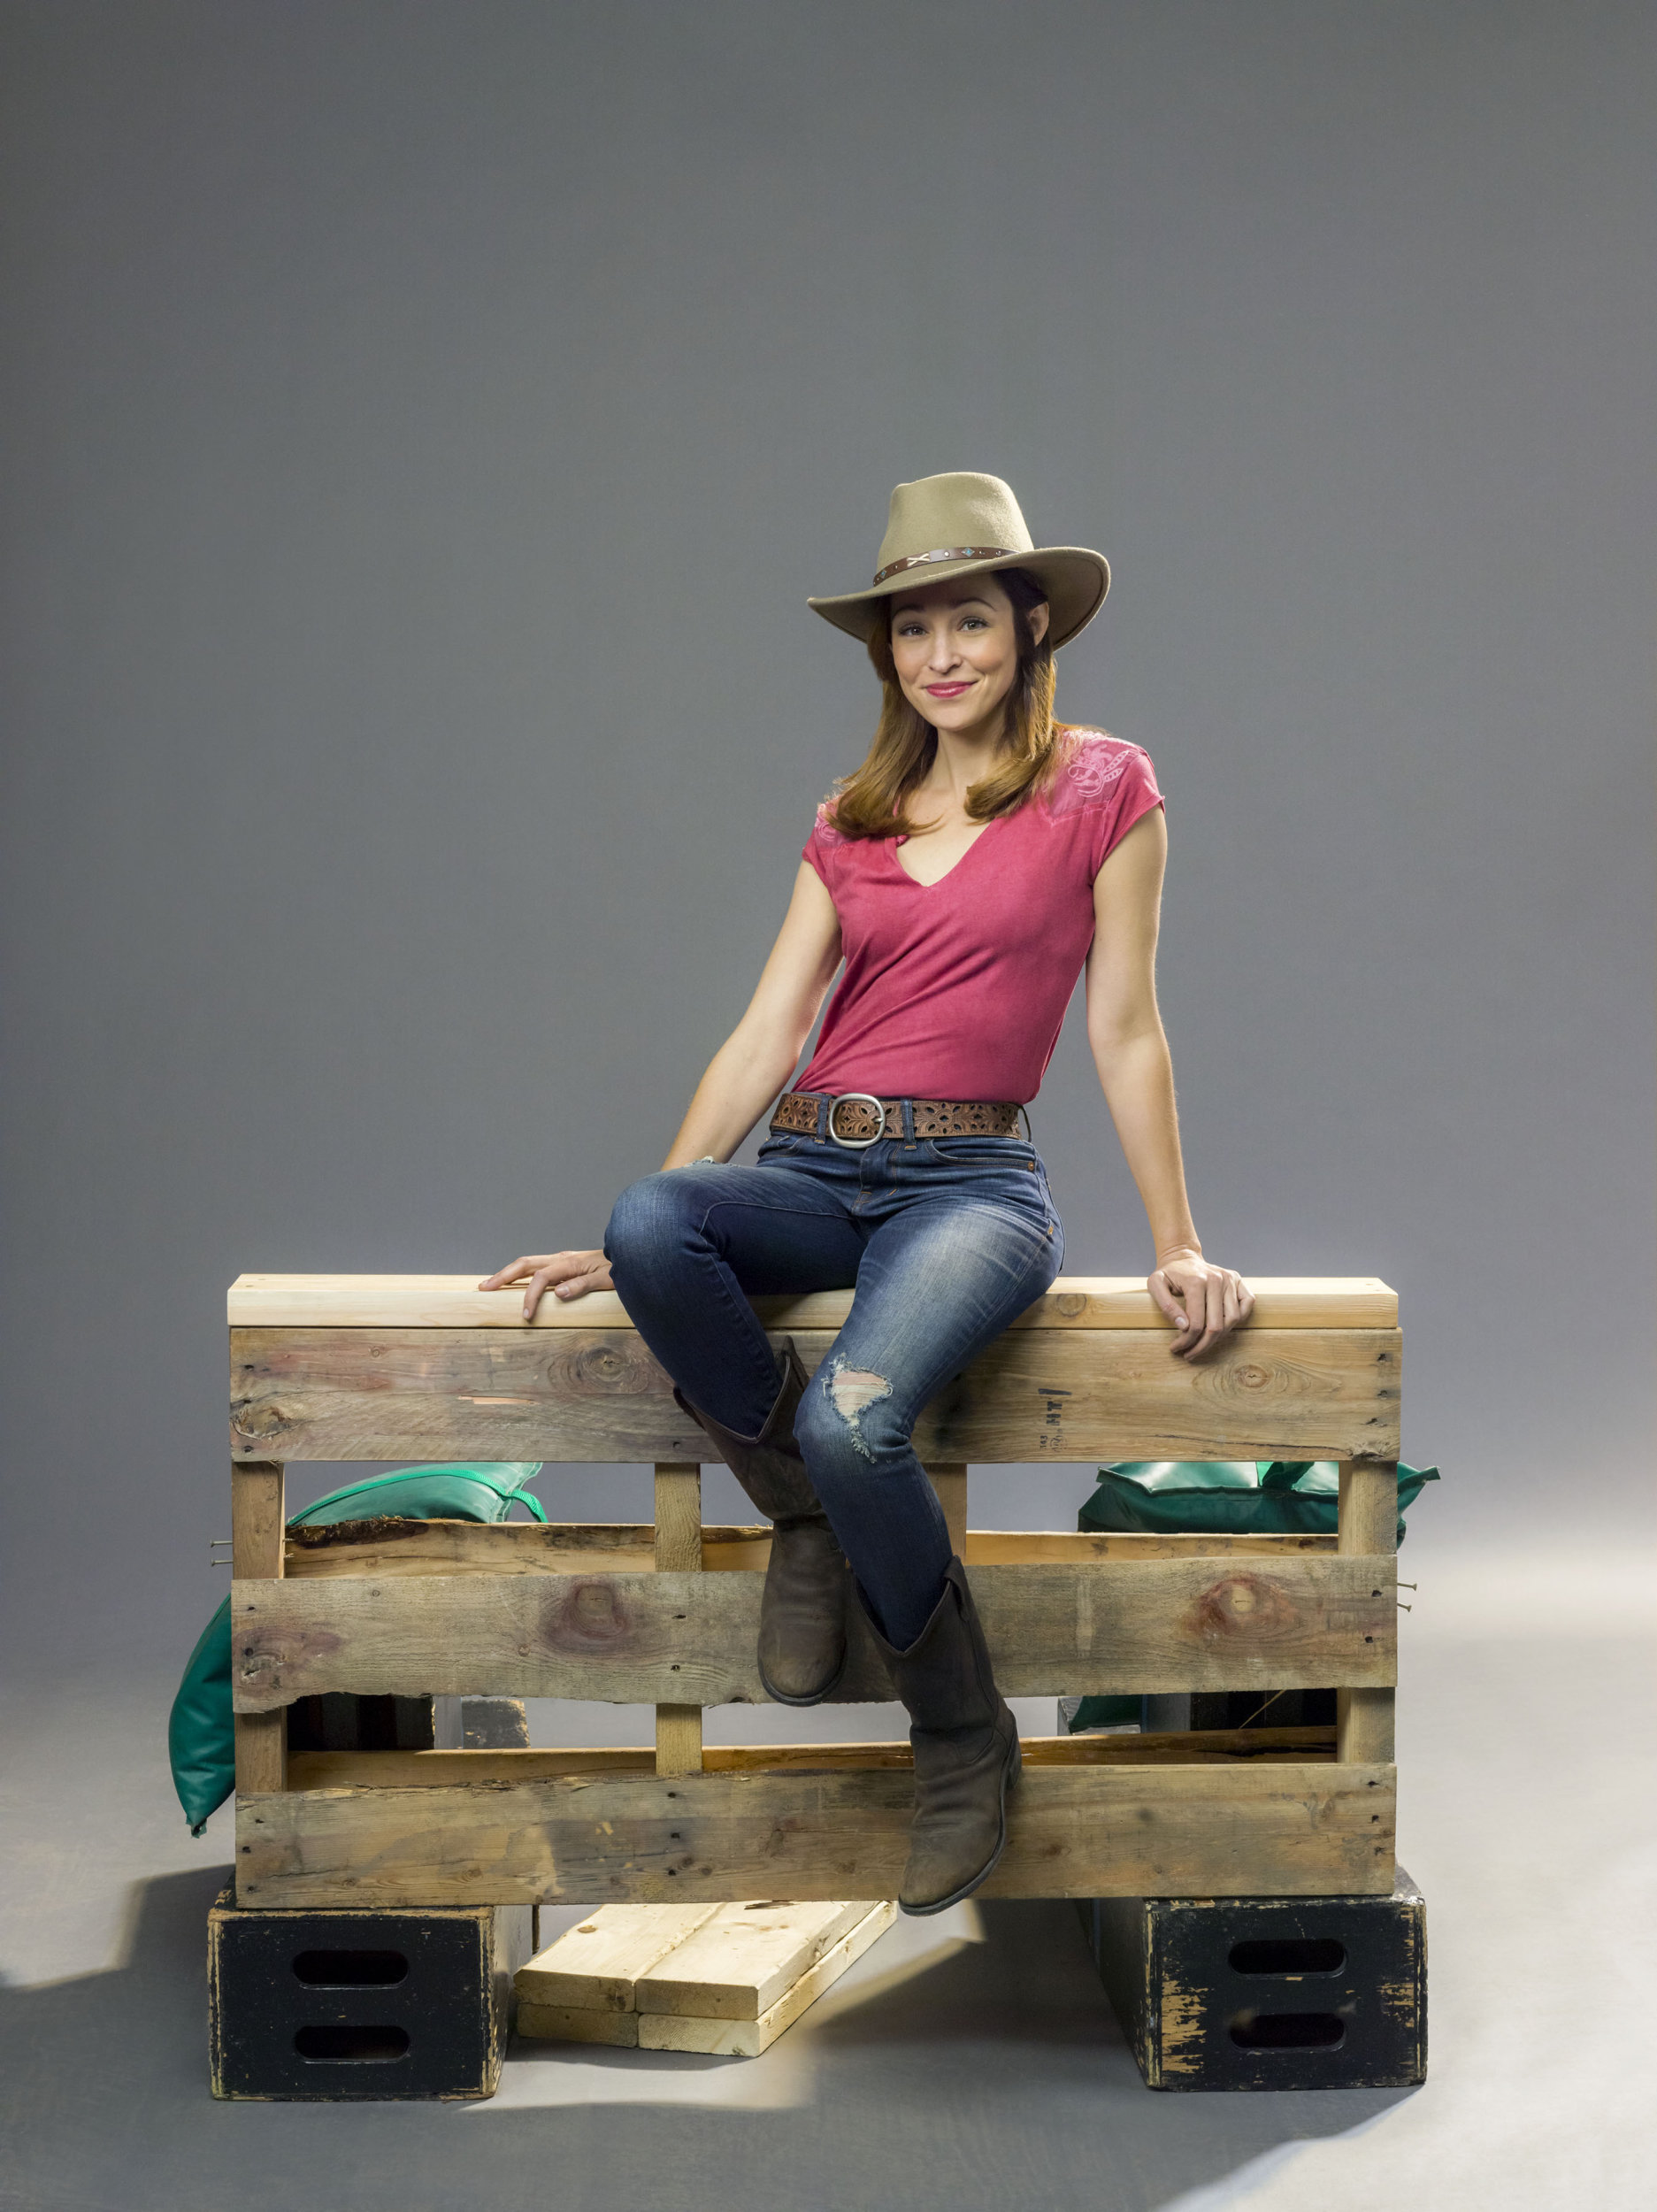 autumn reeser standor a country wedding hallmark channel